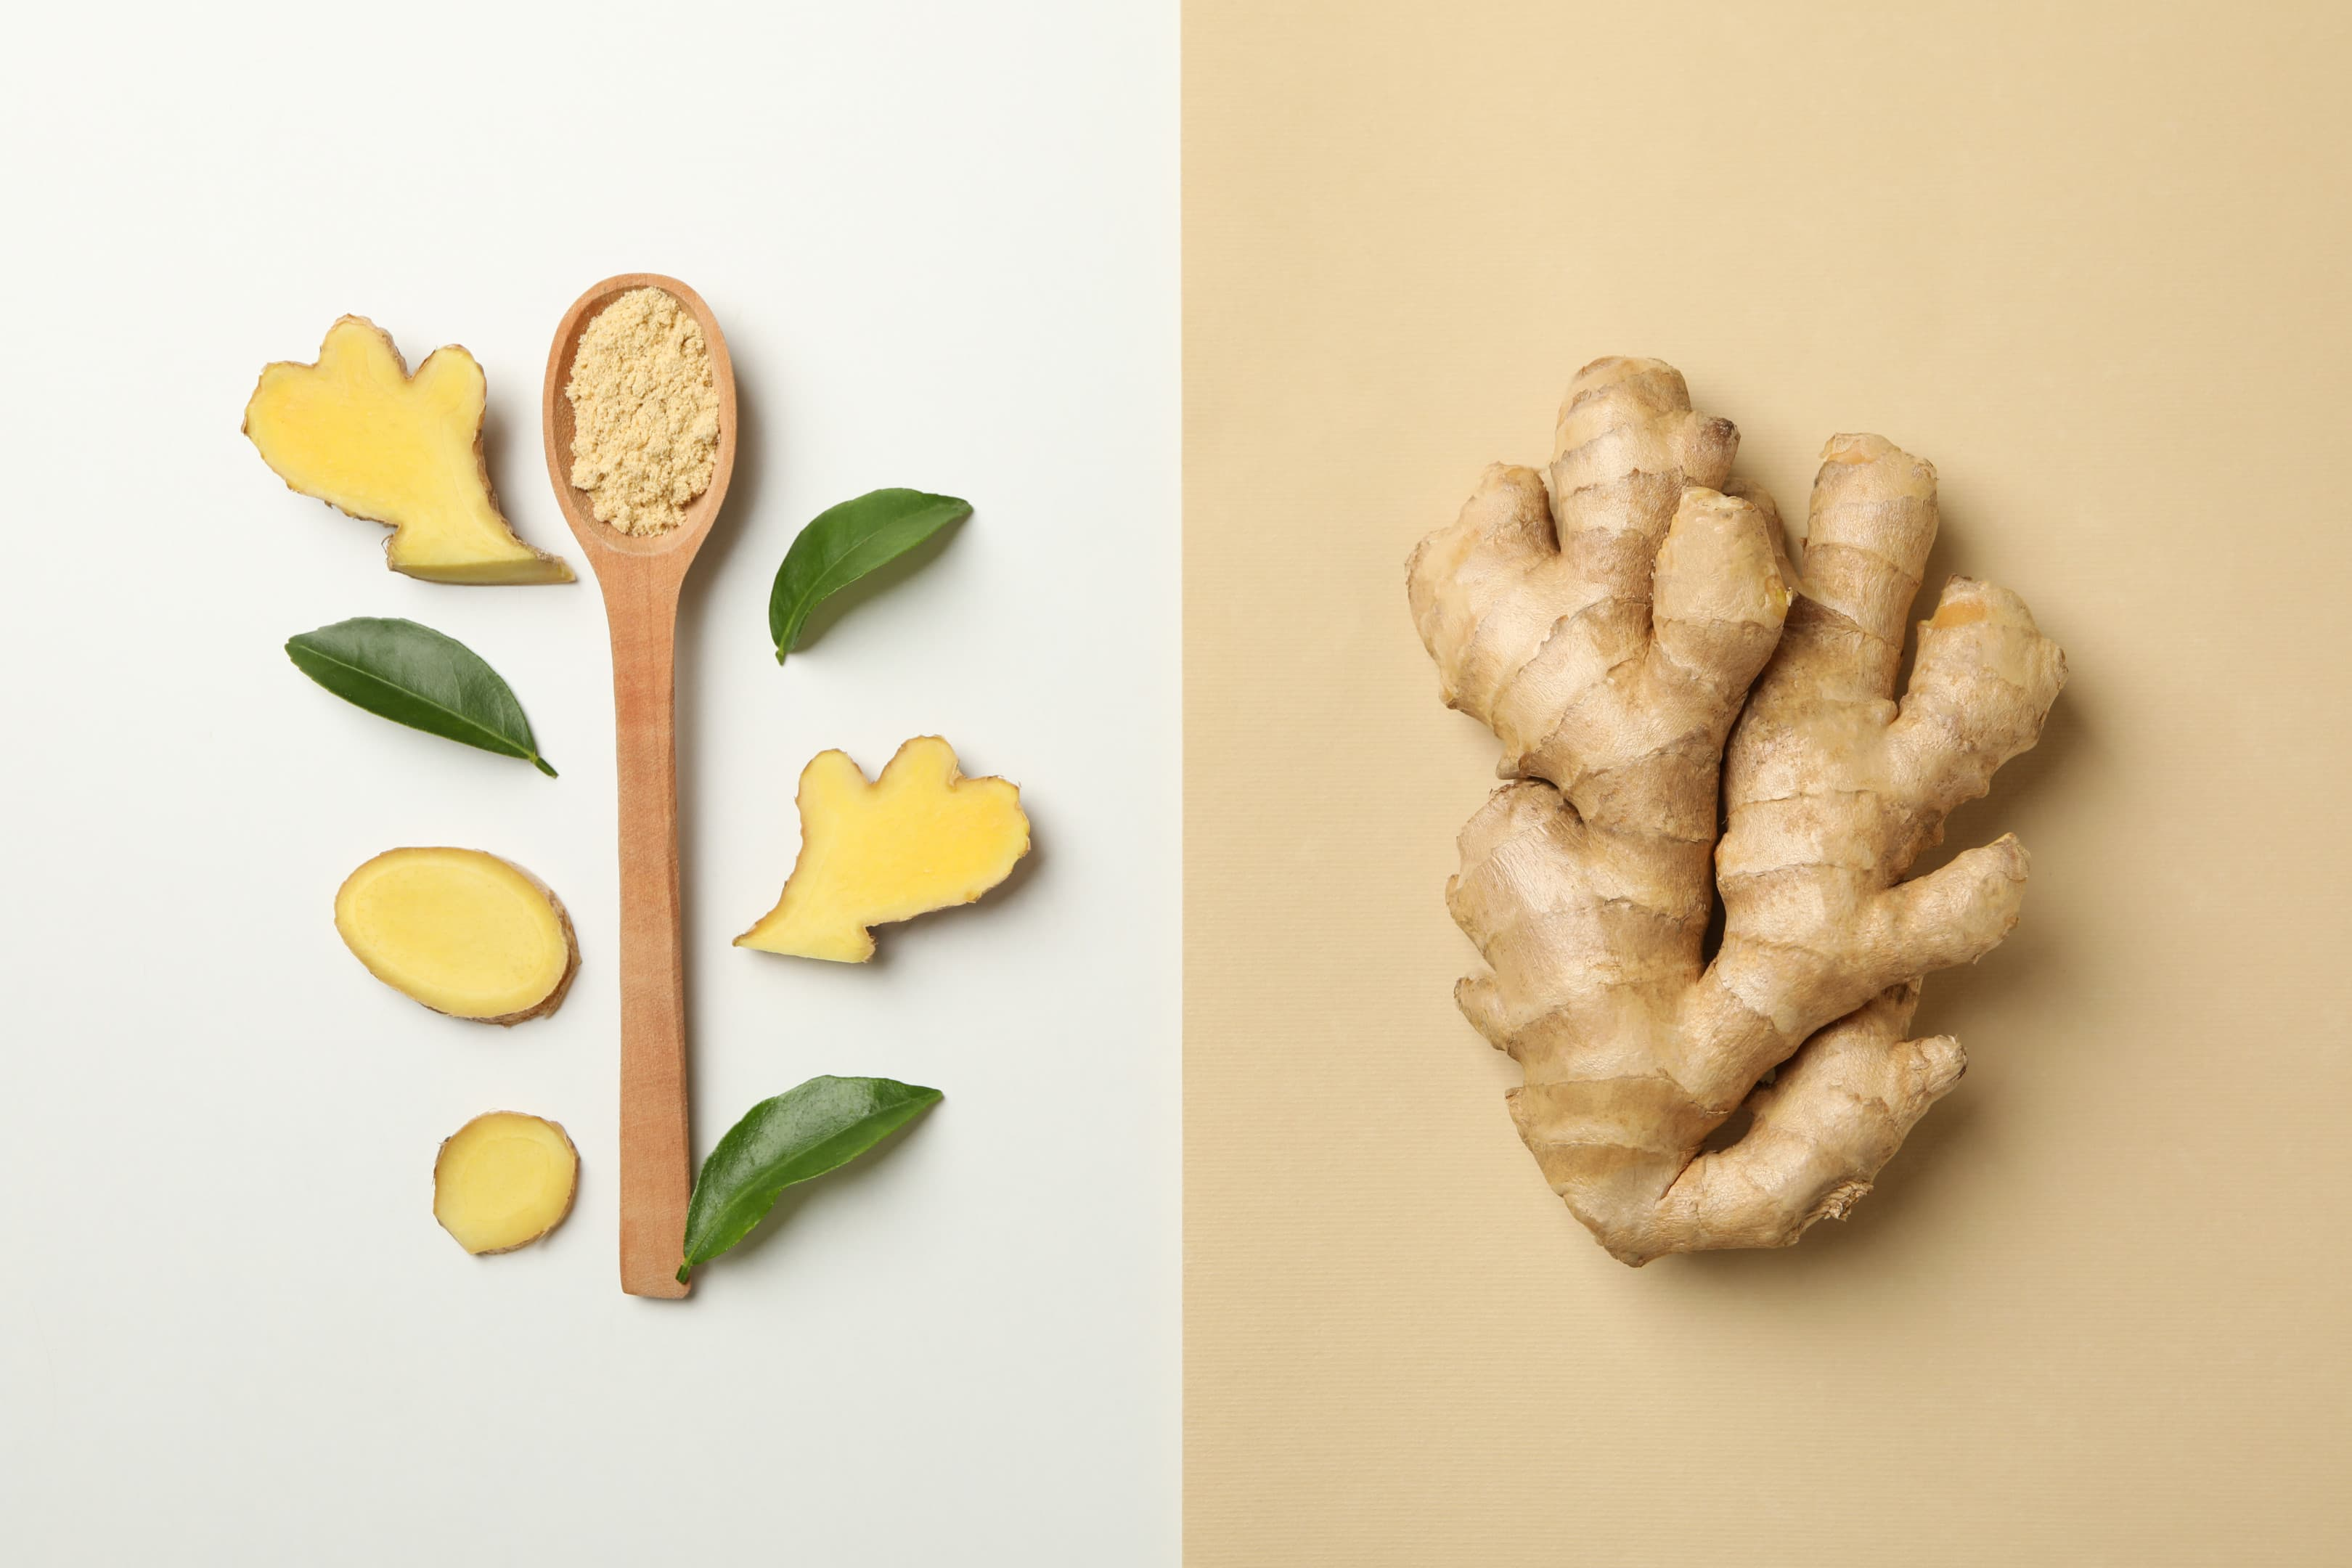 Ginger — spoon with ginger powder and whole ginger root